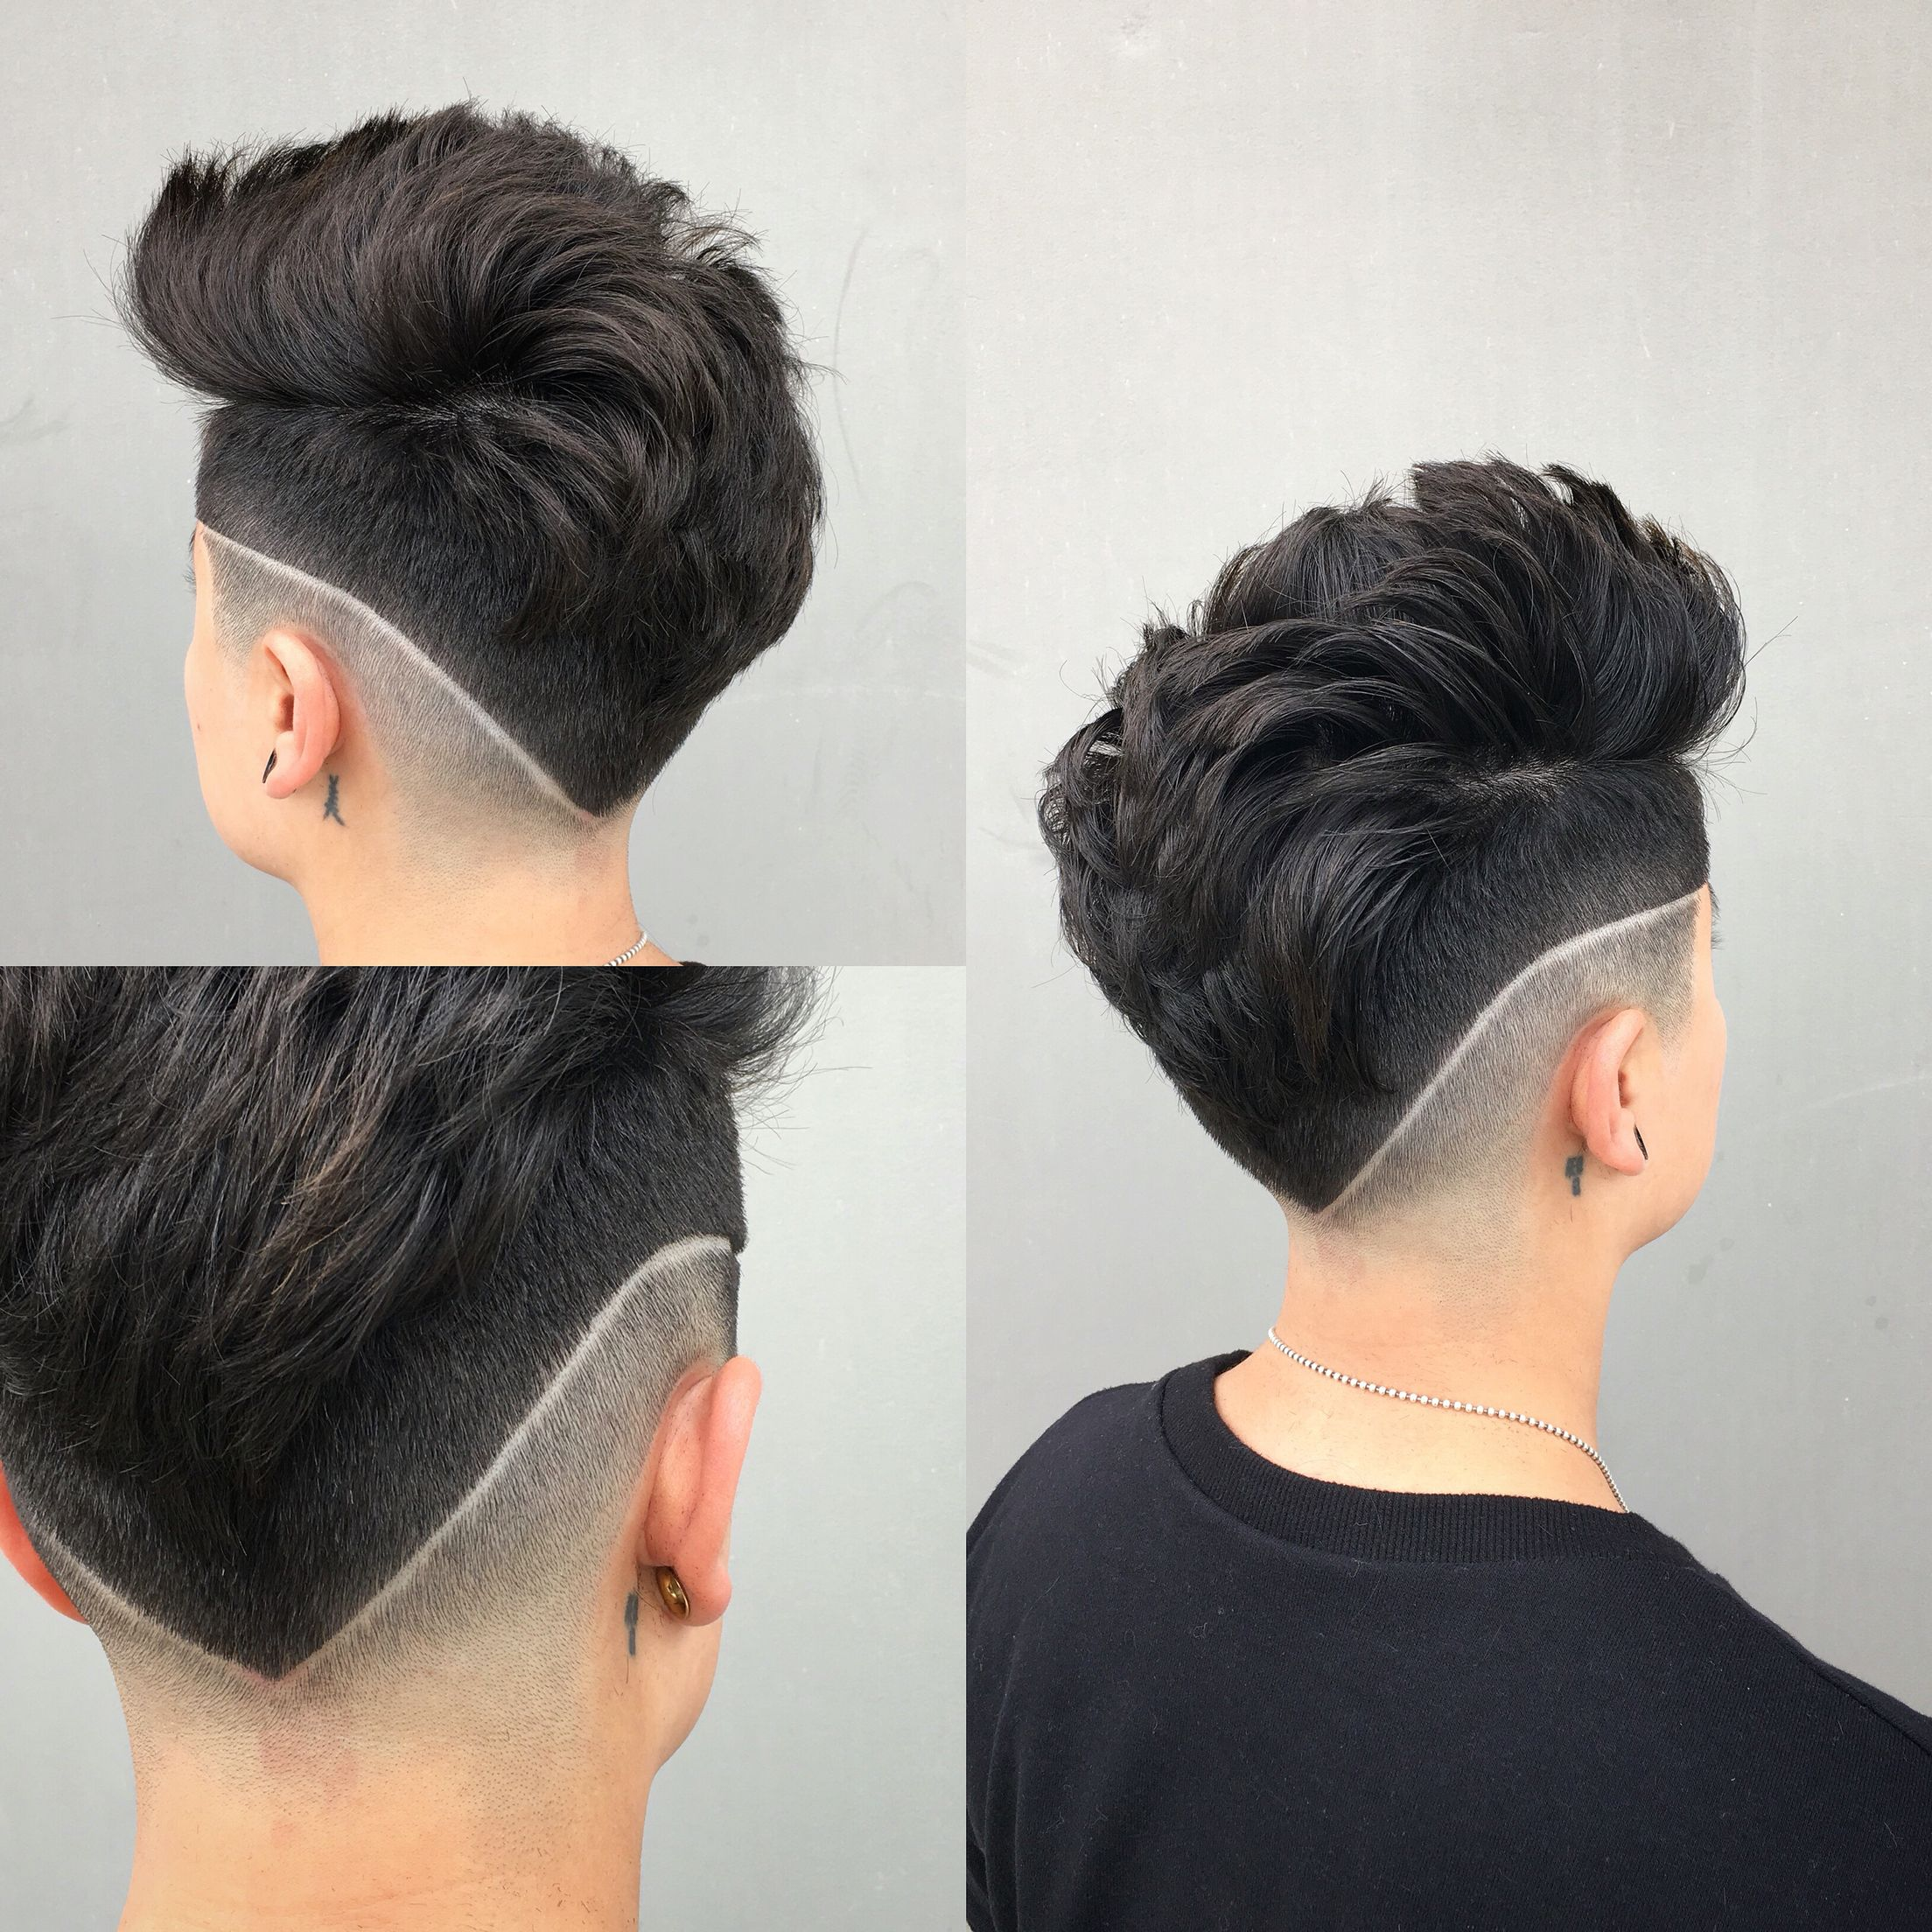 Messy pompadour with a design @razothebarber | Haircuts ...